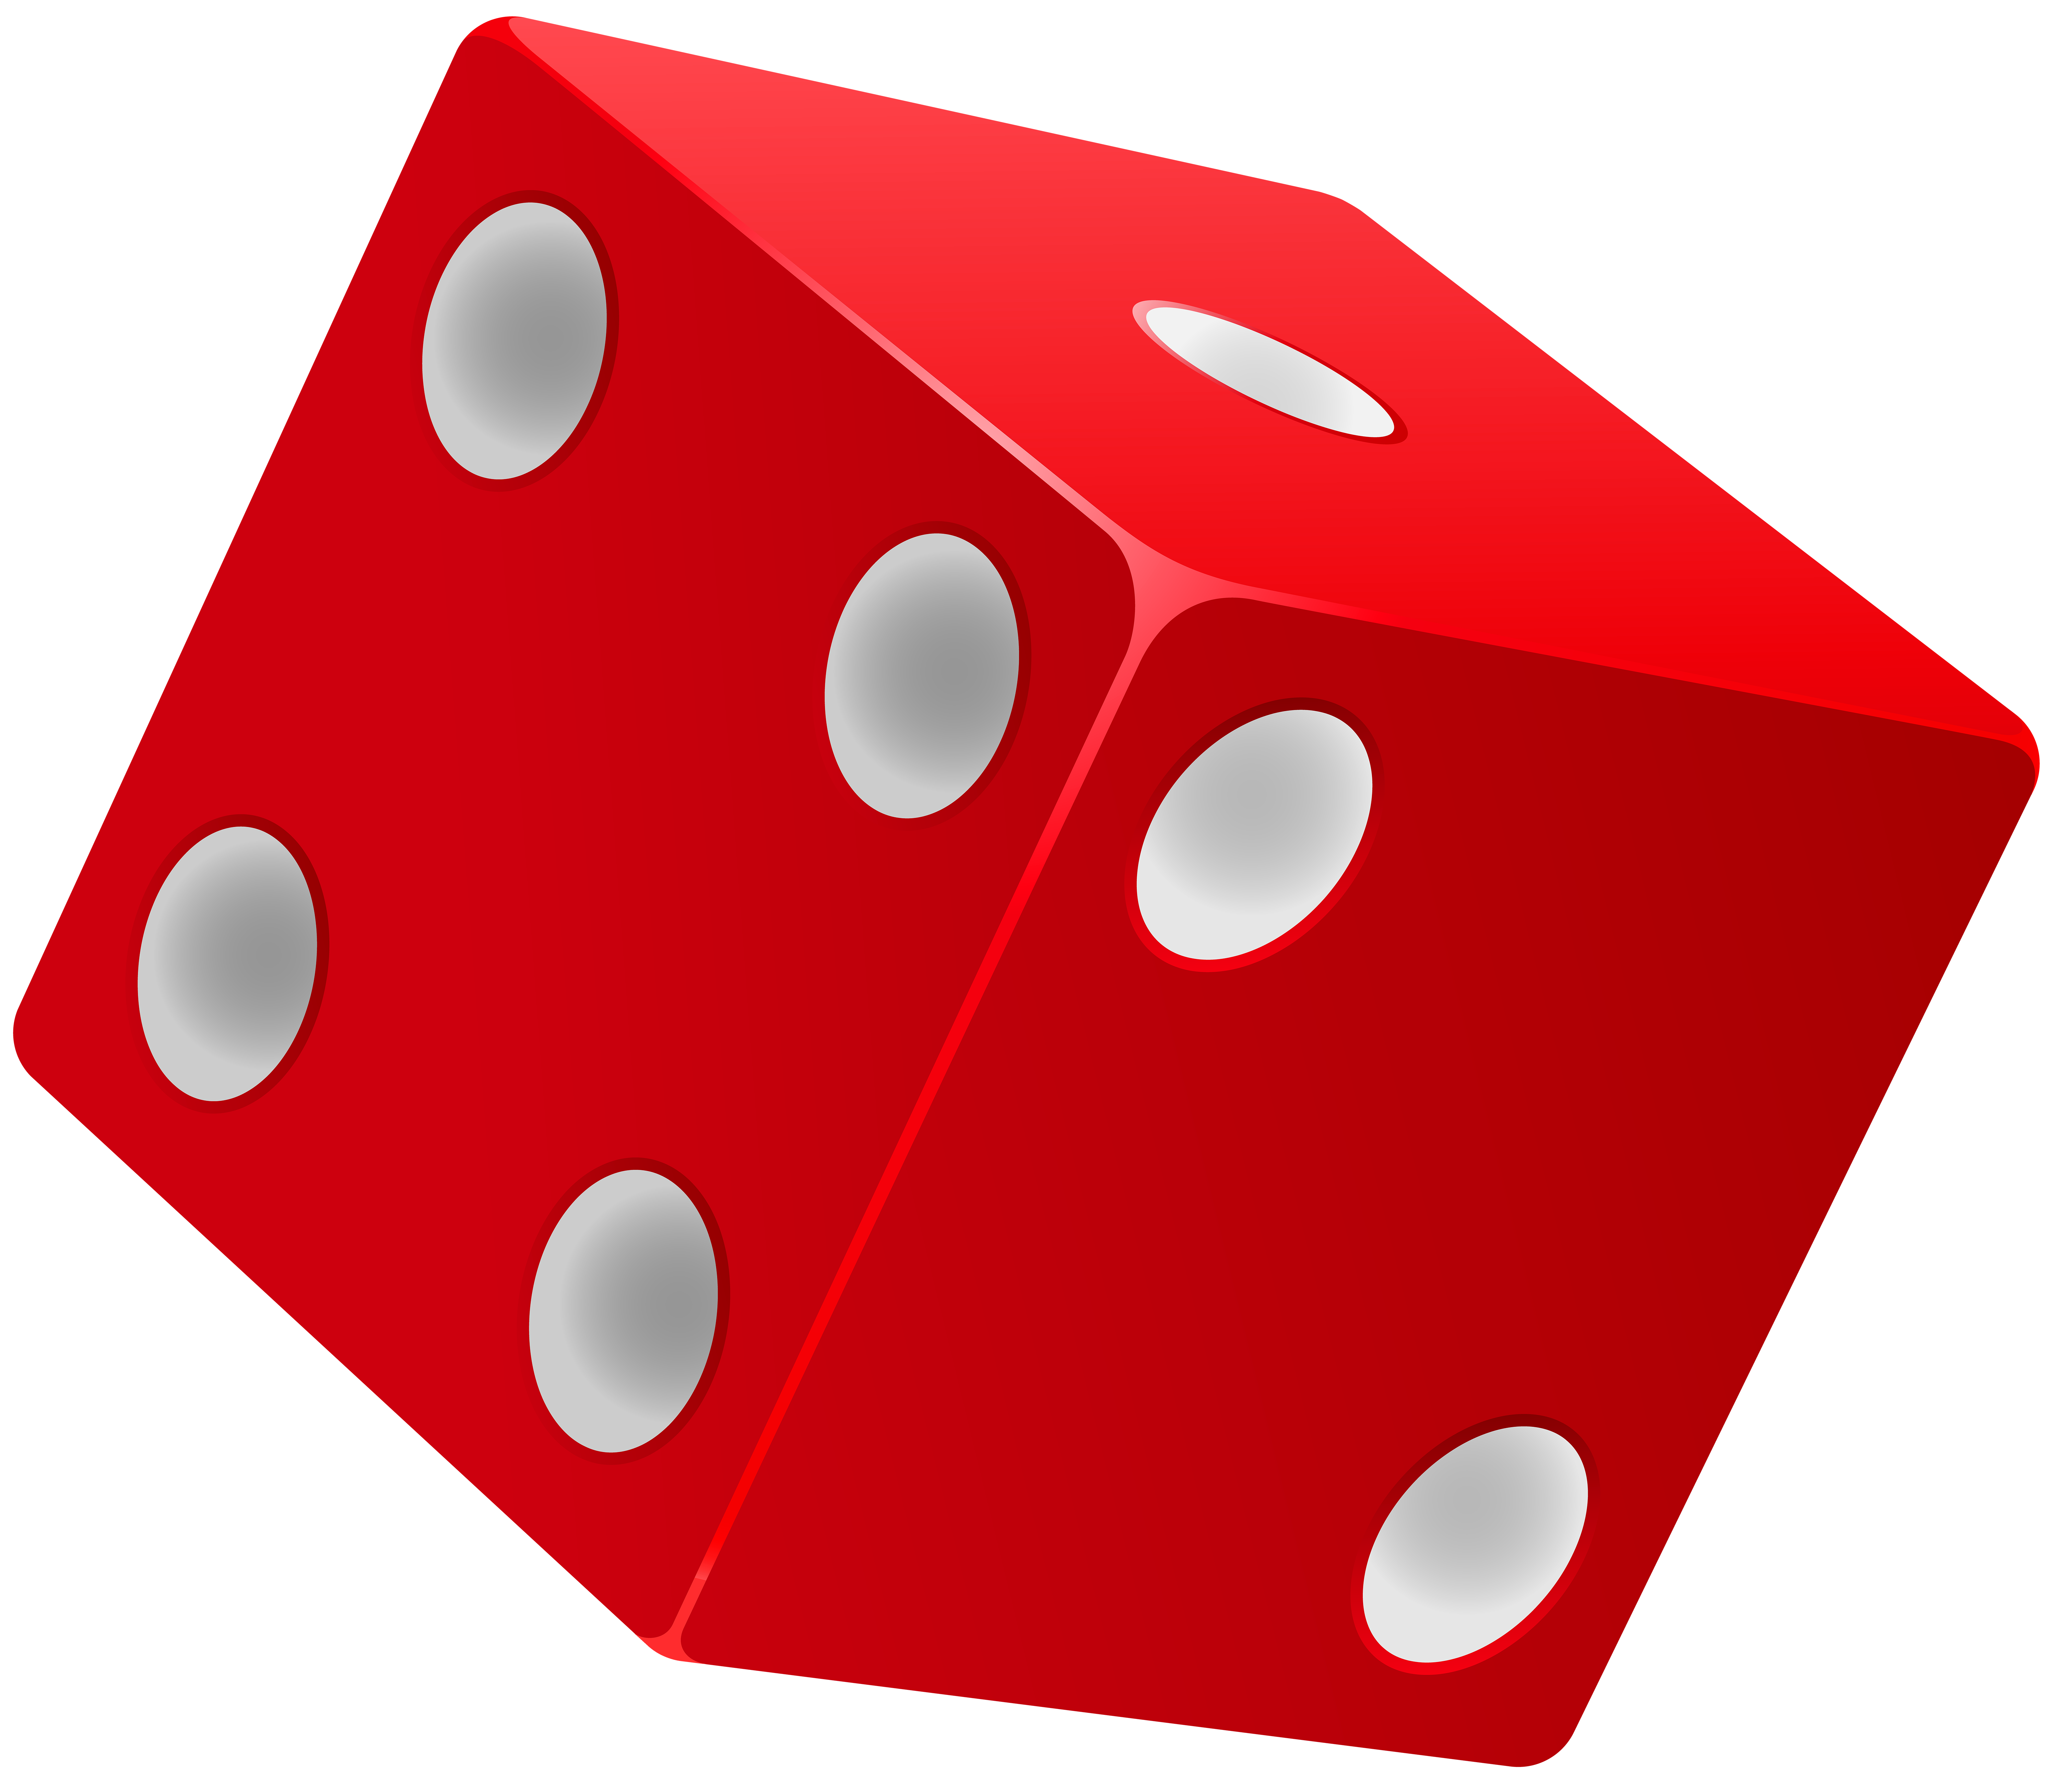 Game clipart bean bag race. Red dice png clip